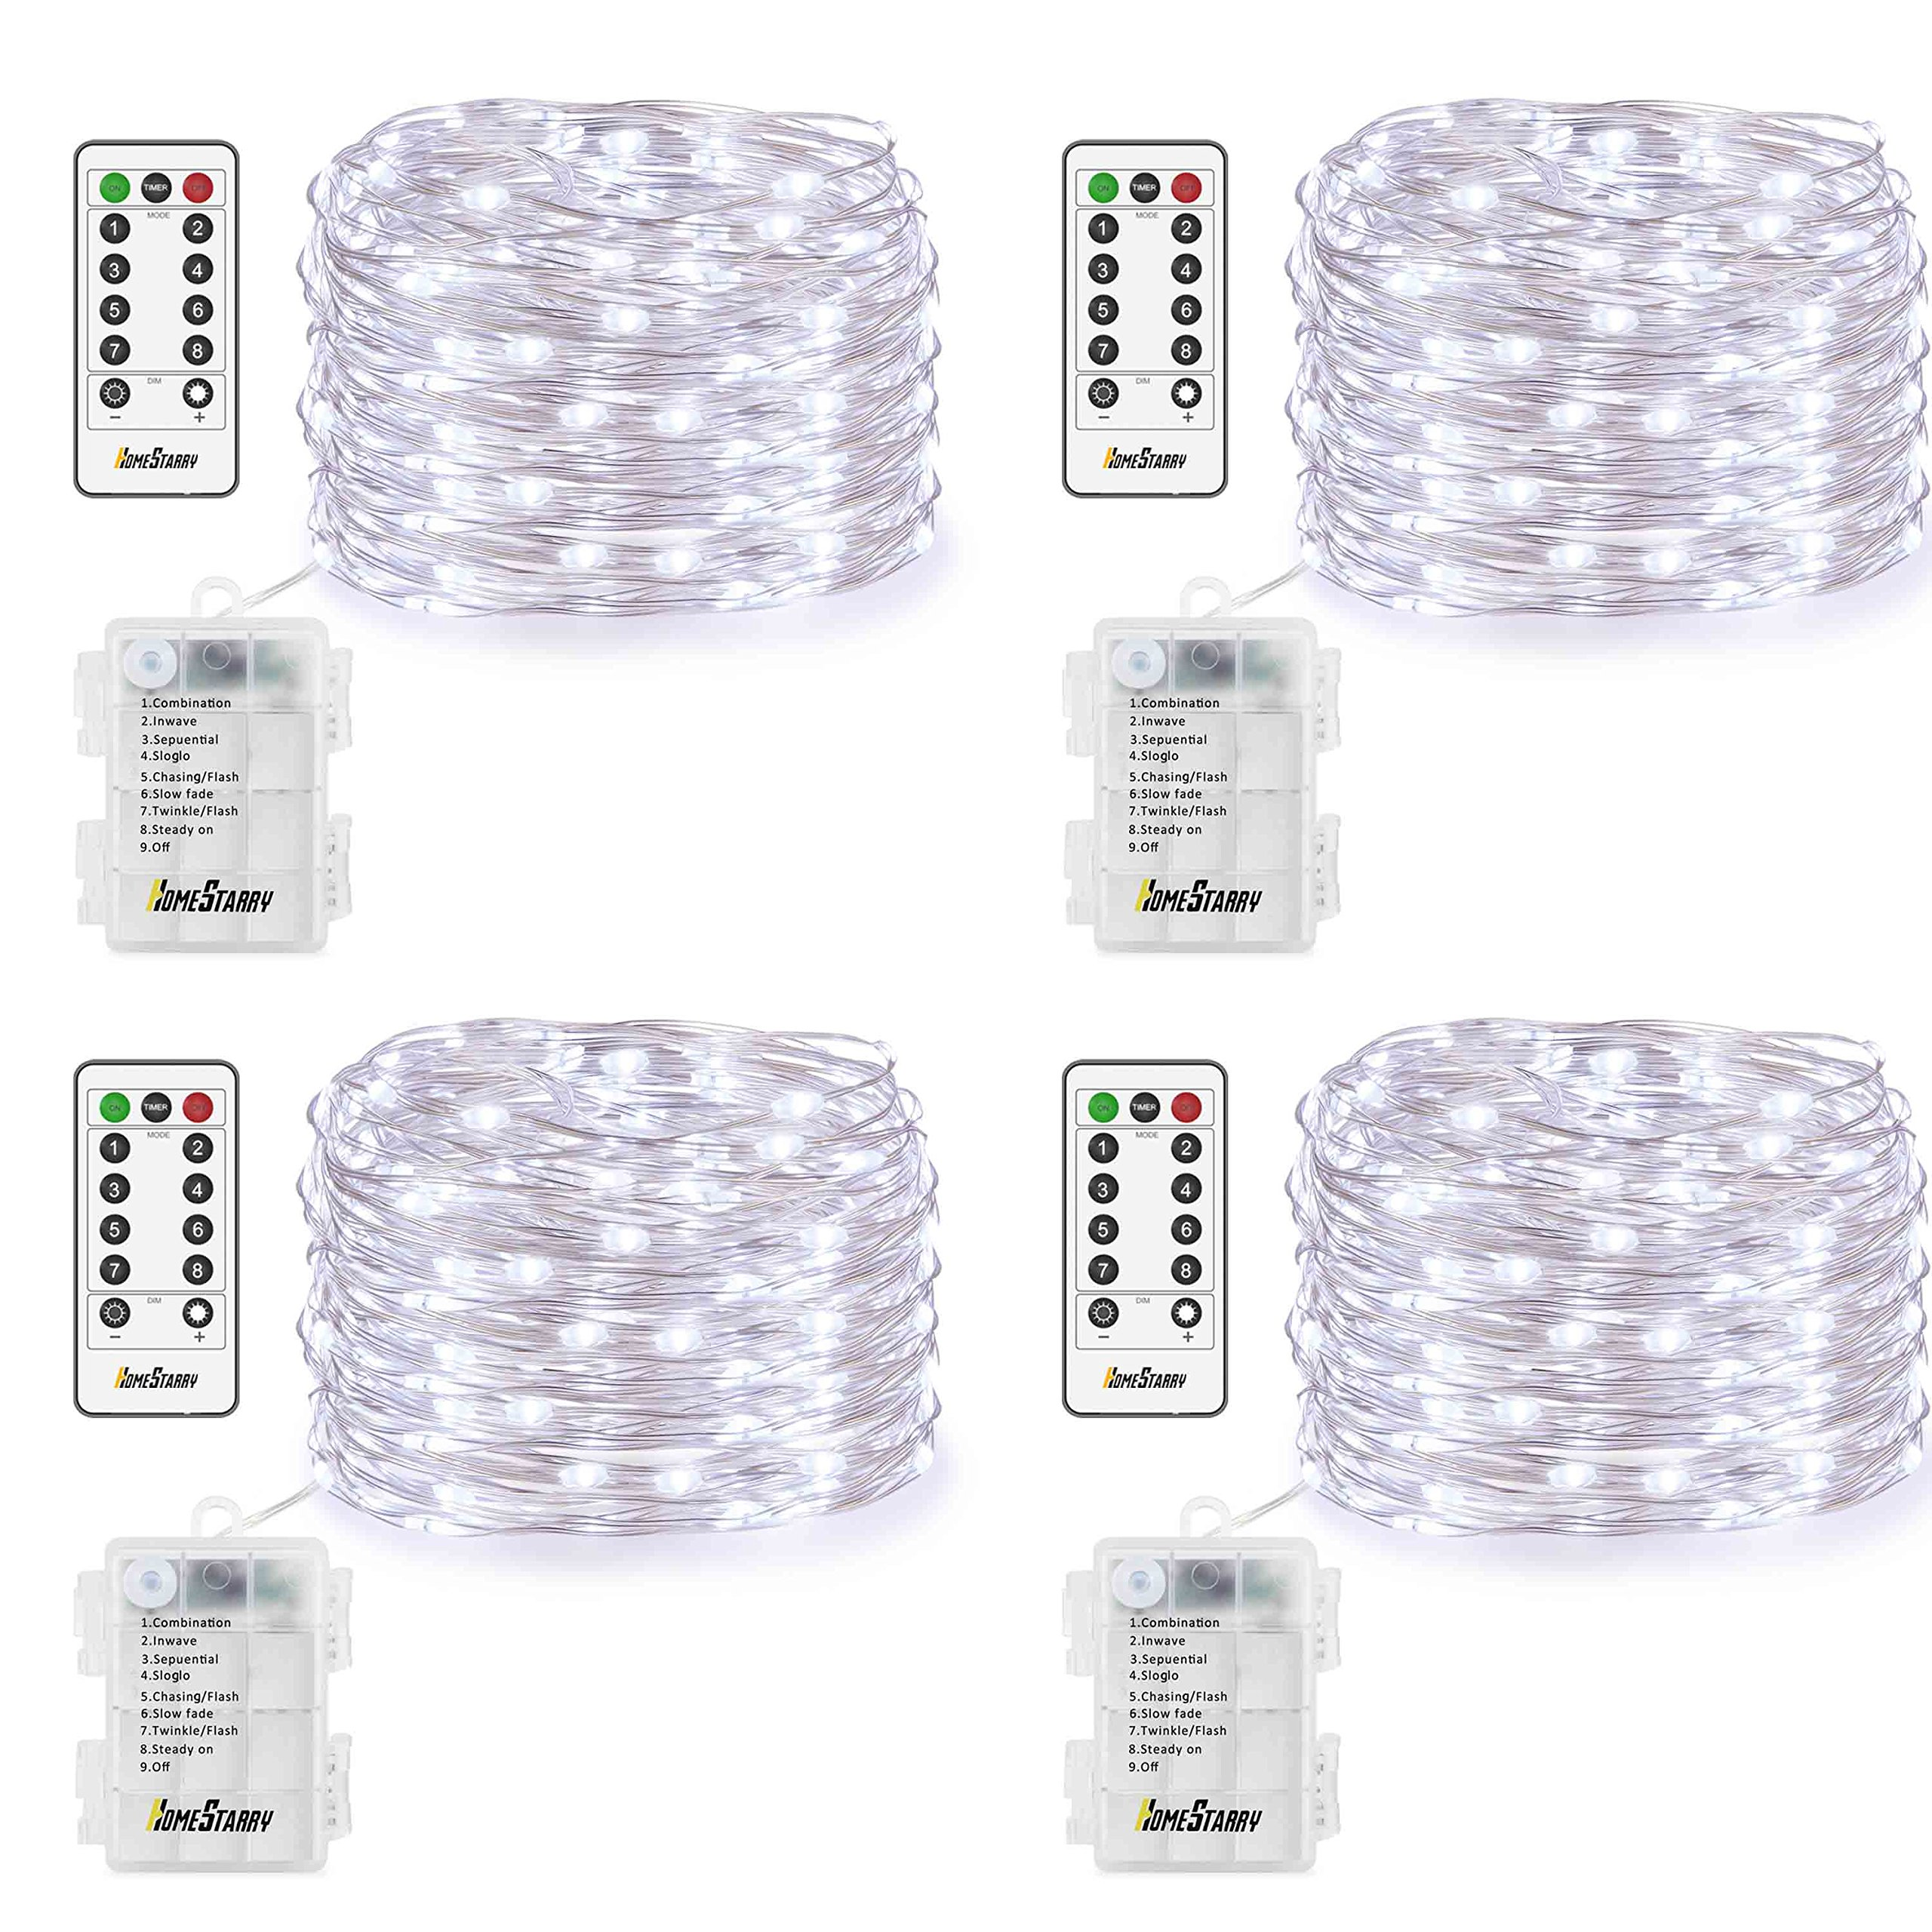 4 Pack Fairy Lights Fairy String Lights Battery Operated Waterproof 8 Modes Remote Control 50 Led String Lights 16.4ft Silver Wire Firefly lights for Bedroom Wedding Festival Decor (Cool White)